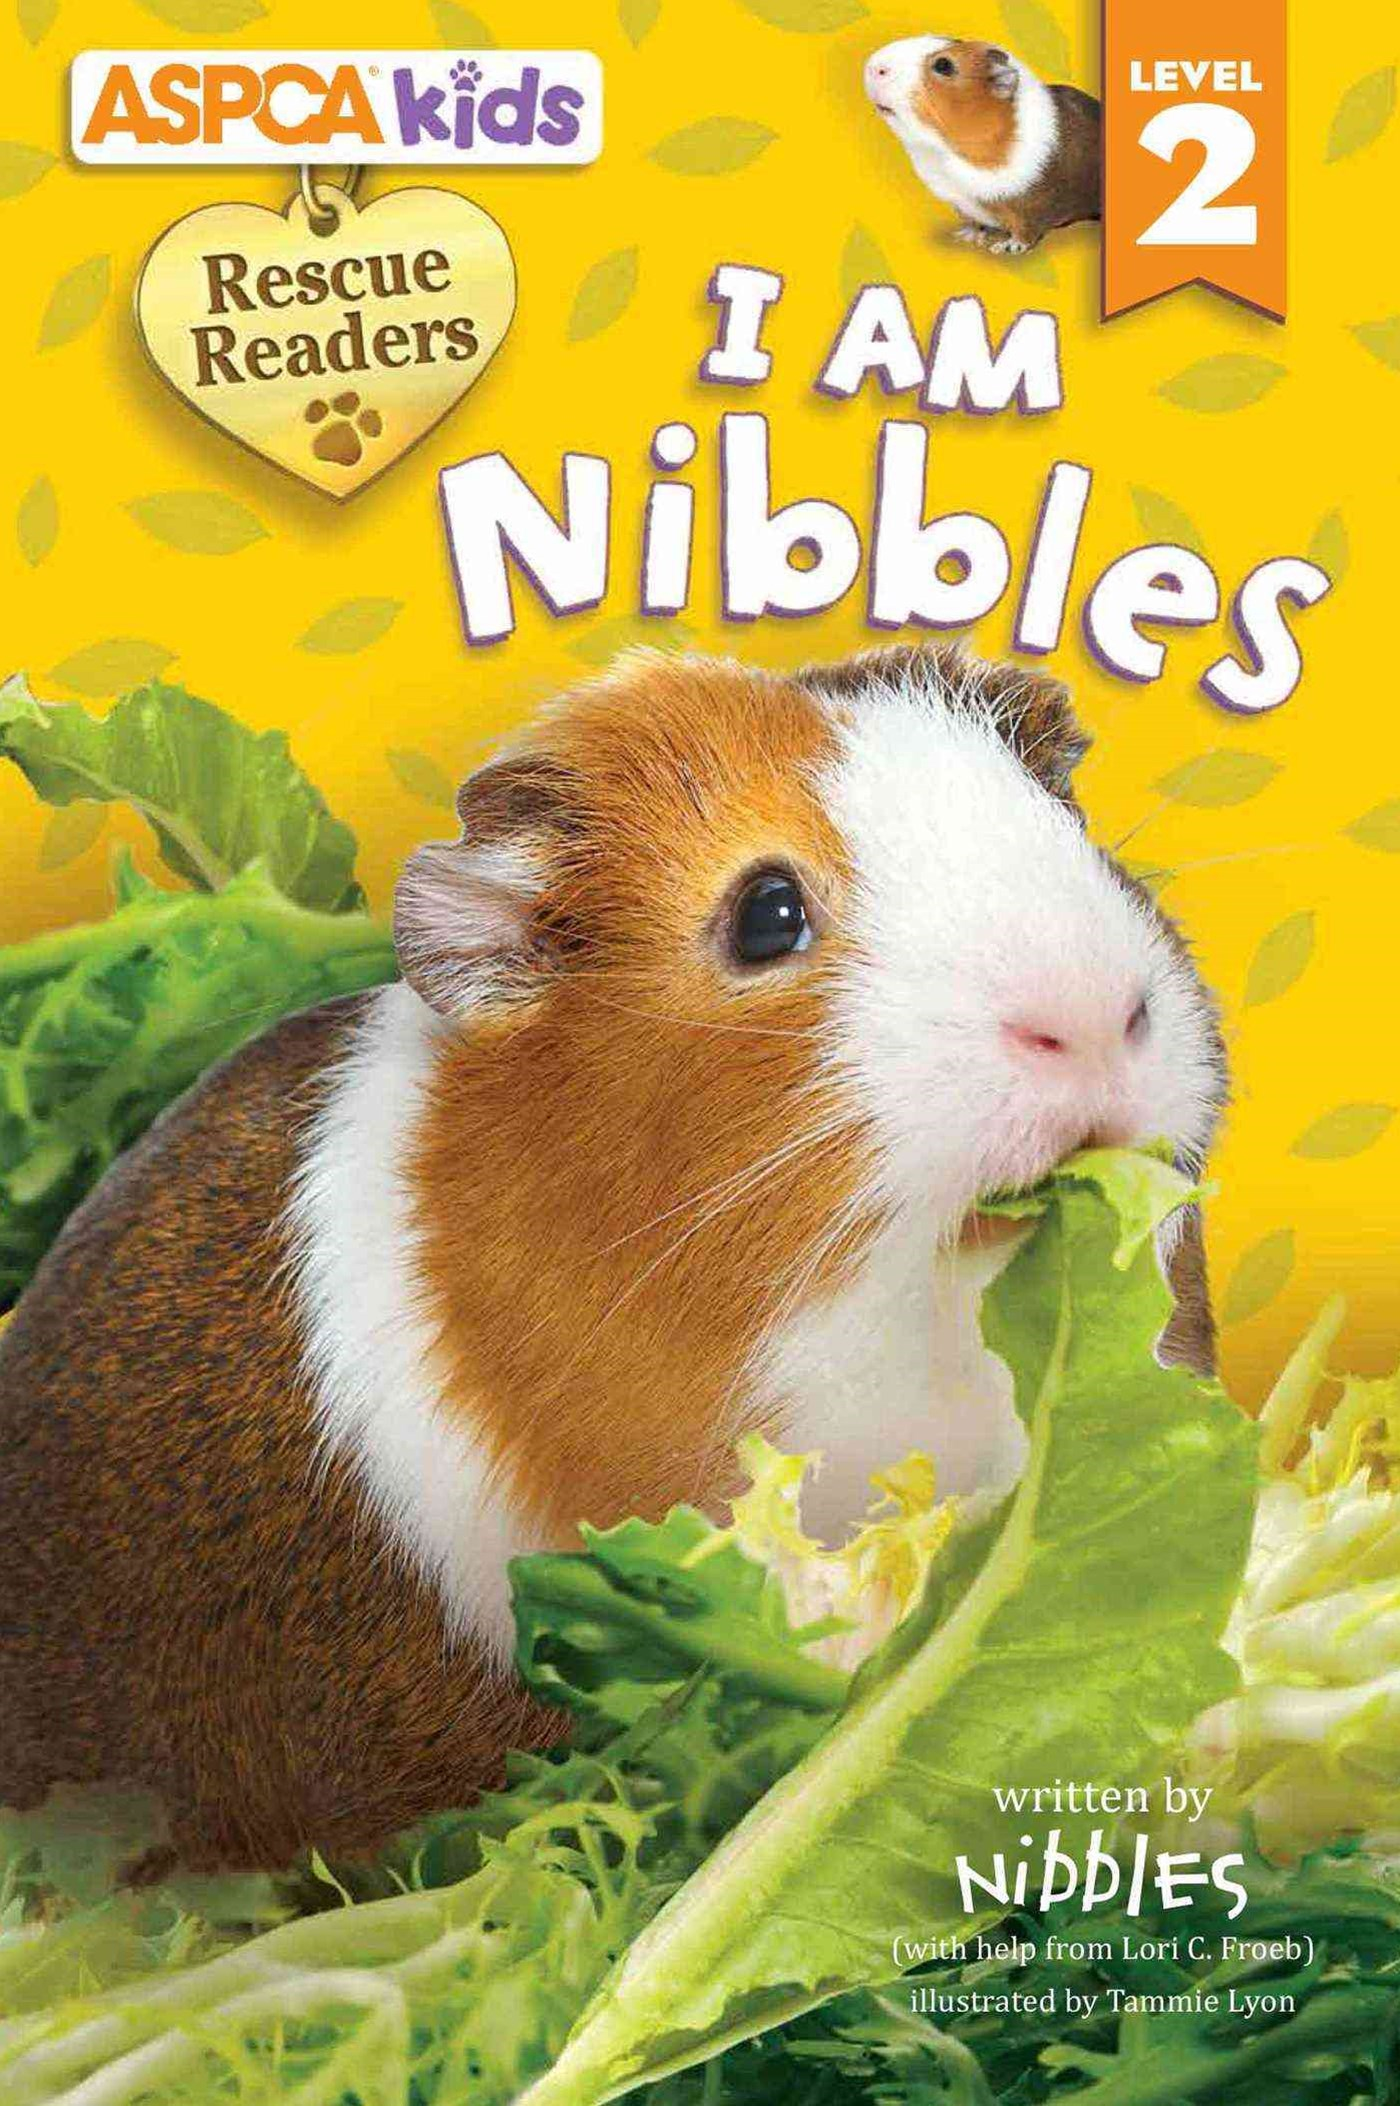 ASPCA Rescue Reader - I Am Nibbles